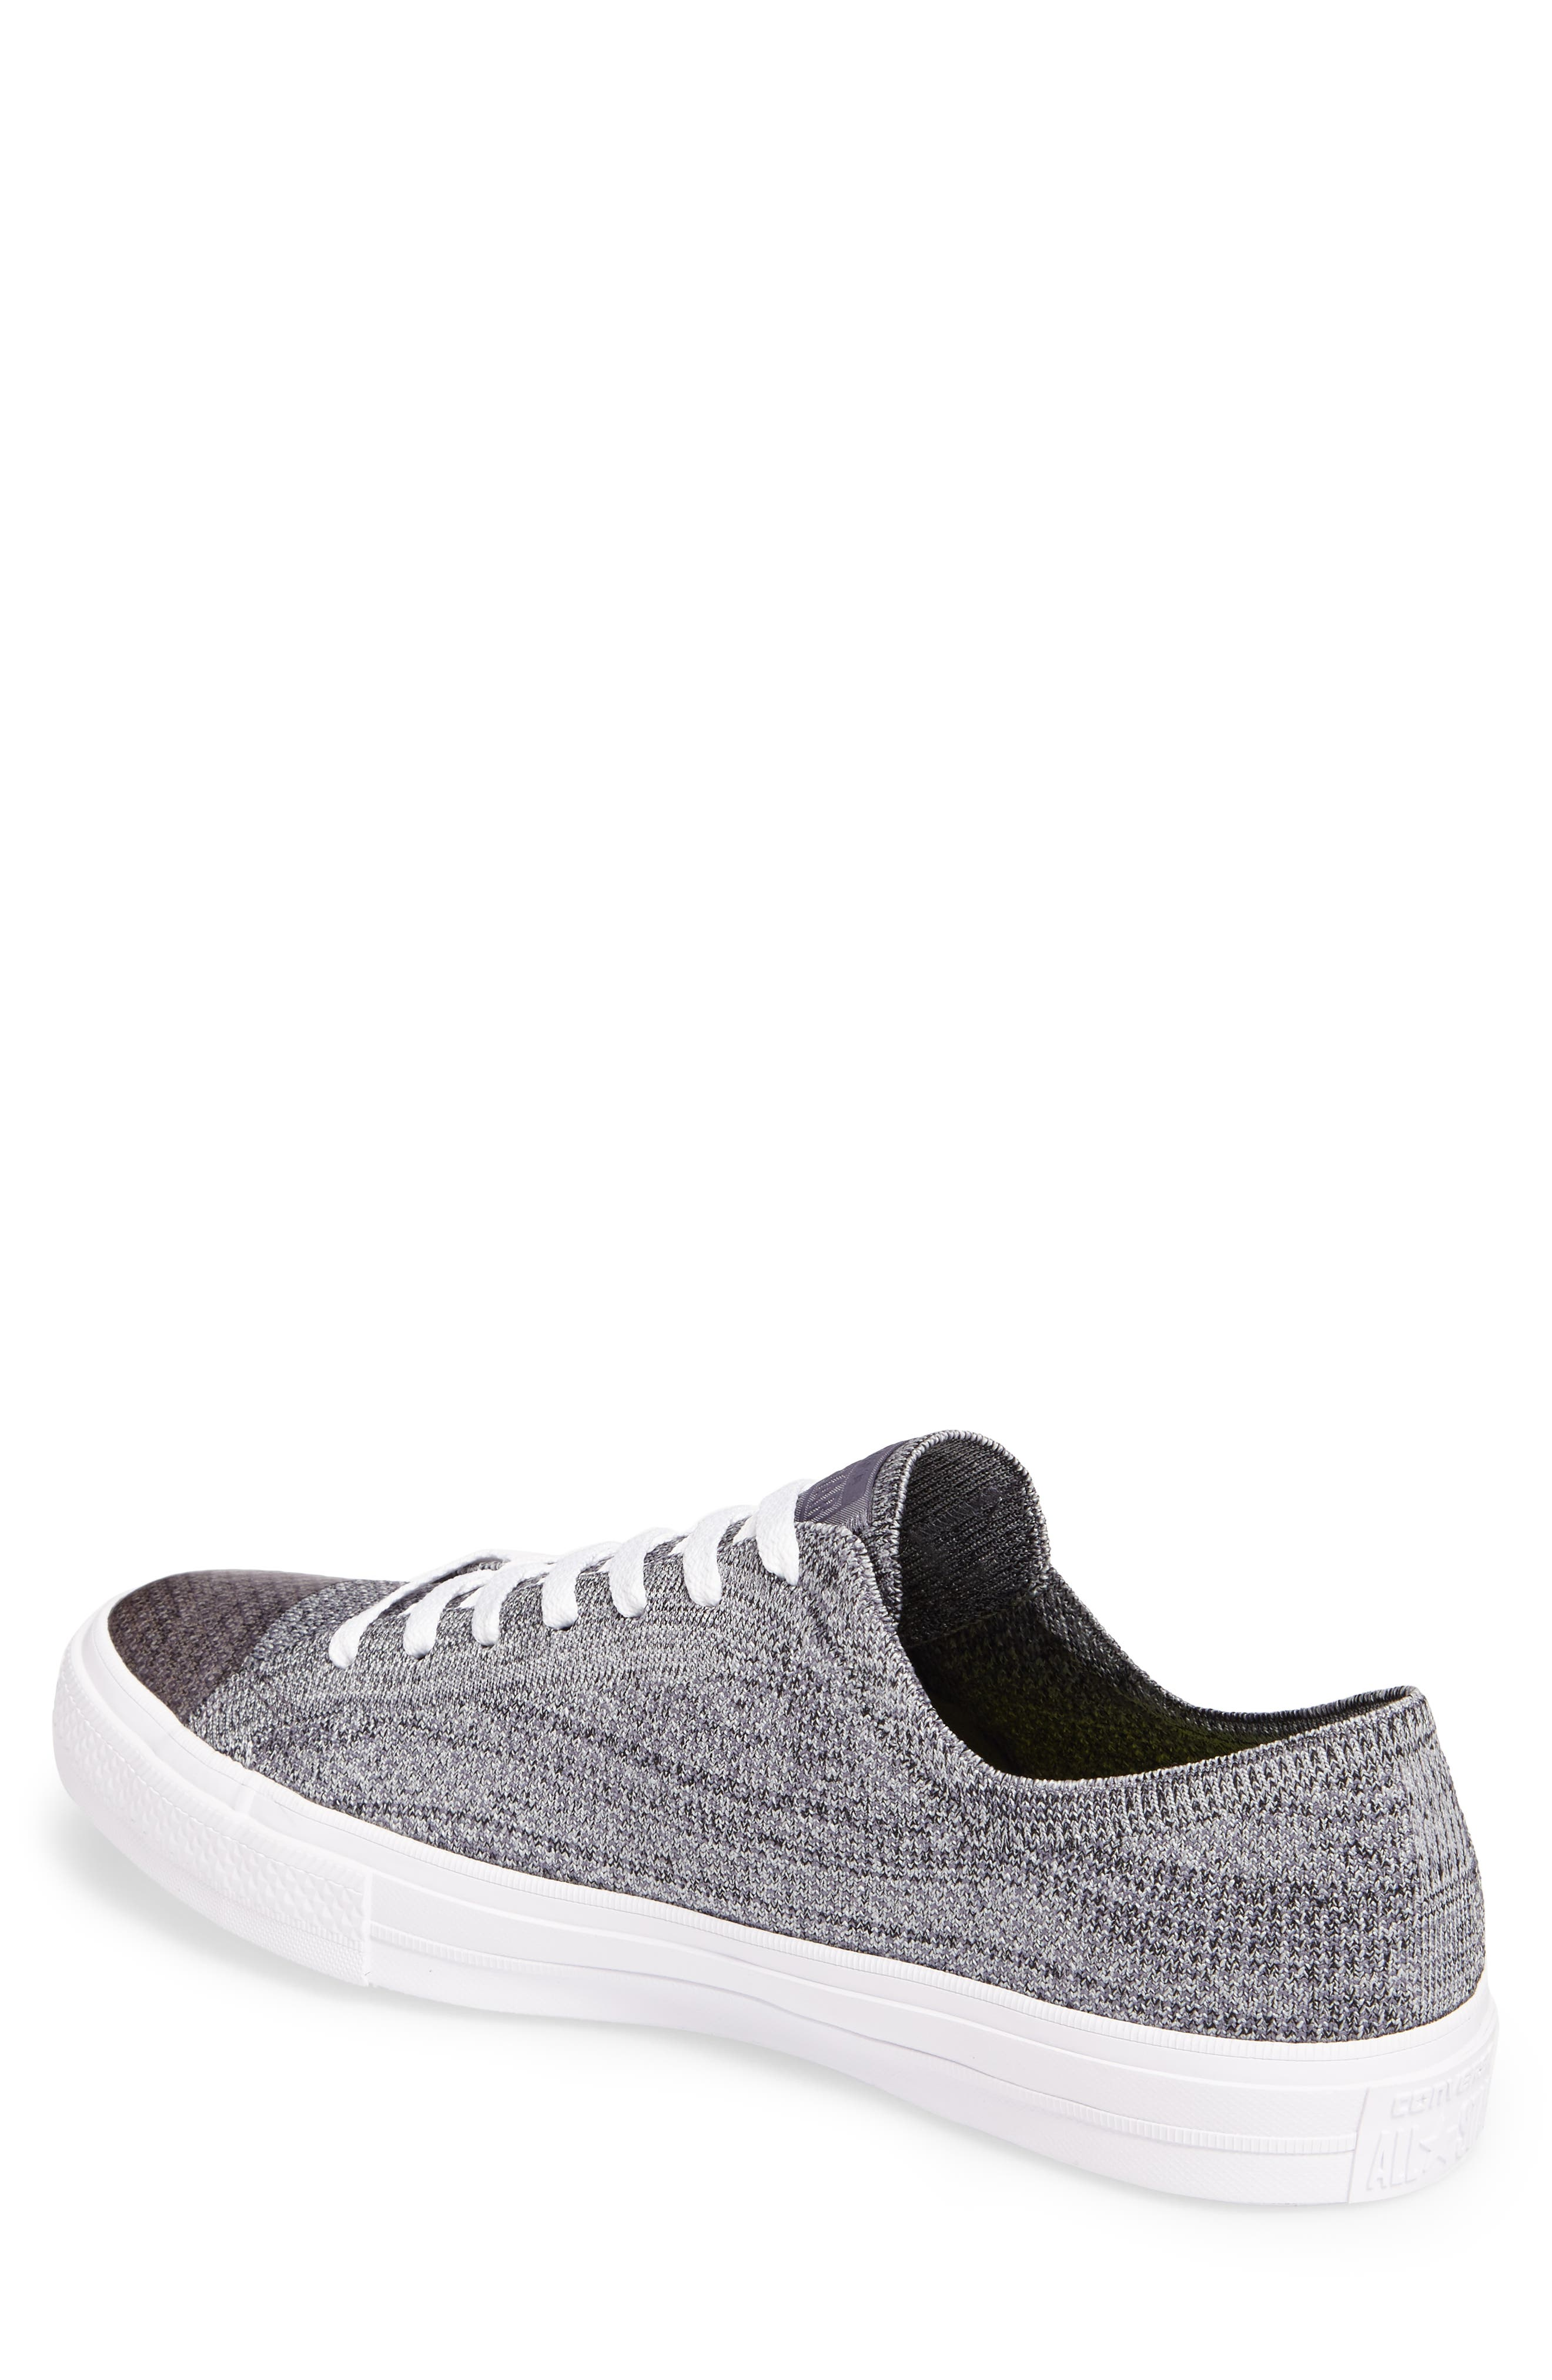 Chuck Taylor<sup>®</sup> All Star<sup>®</sup> Flyknit Sneaker,                             Alternate thumbnail 2, color,                             027